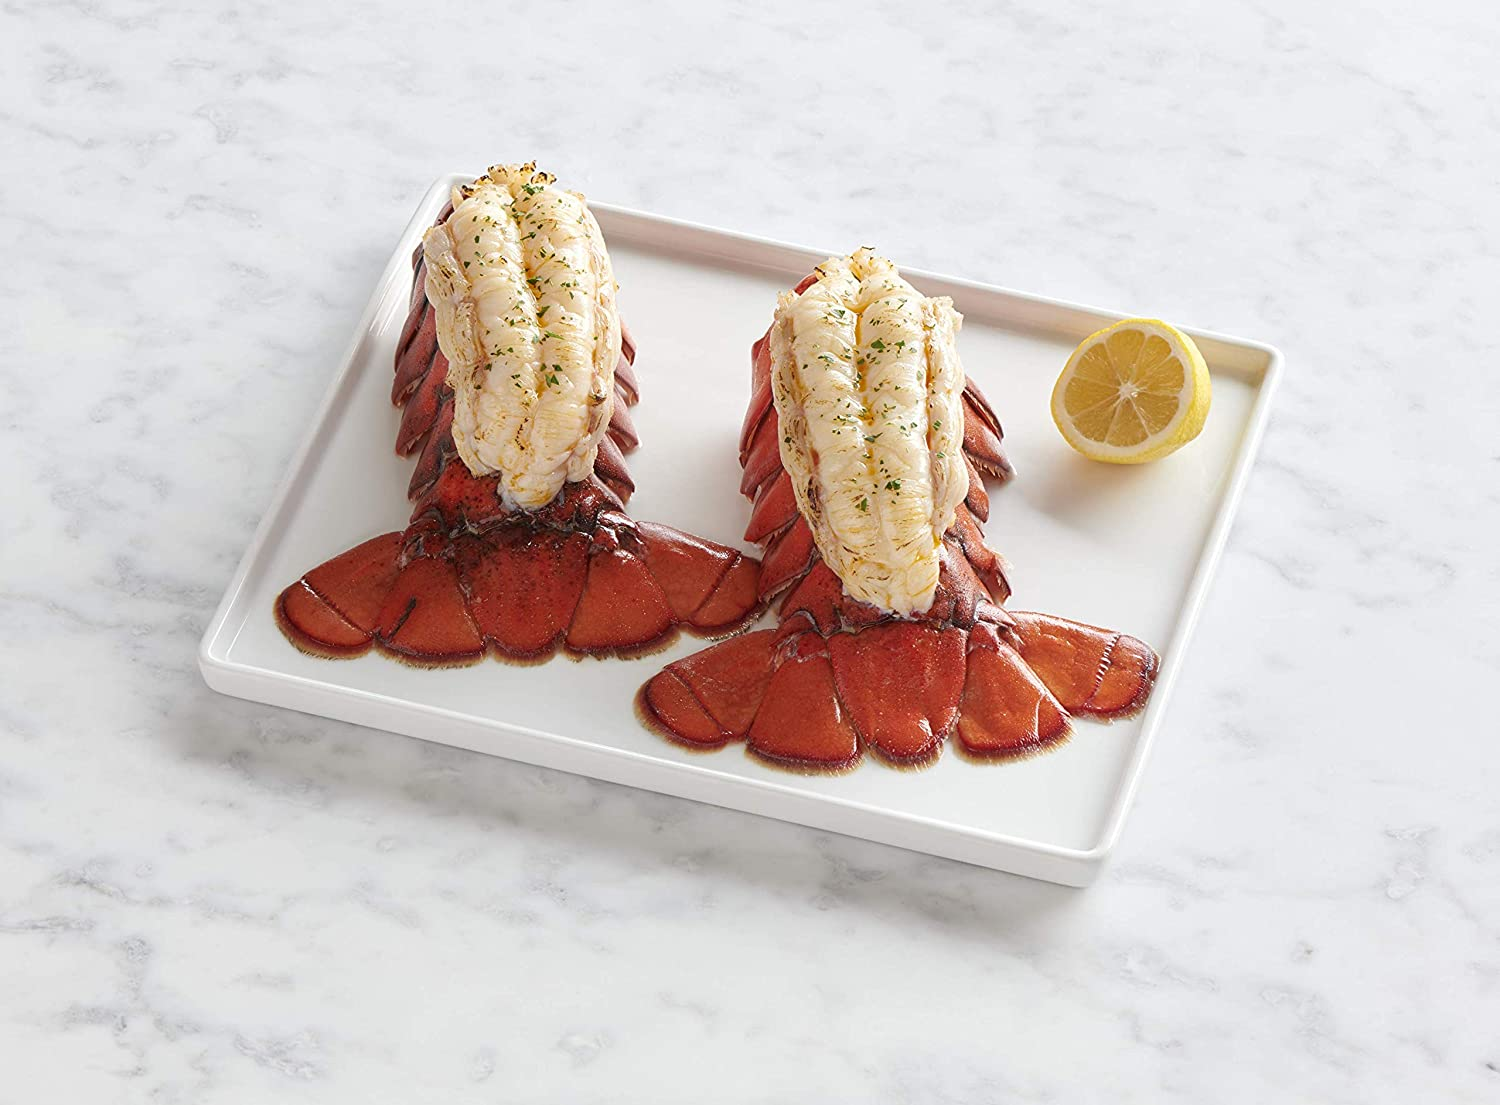 Lobster Gram |Two Fresh Maine Lobster Tails 10-12 oz.| Sustainably Sourced | Fresh and Fast Delivery | From the #1 Lobster Food Delivery Company| Great for Grilling, Baking, or Boiling